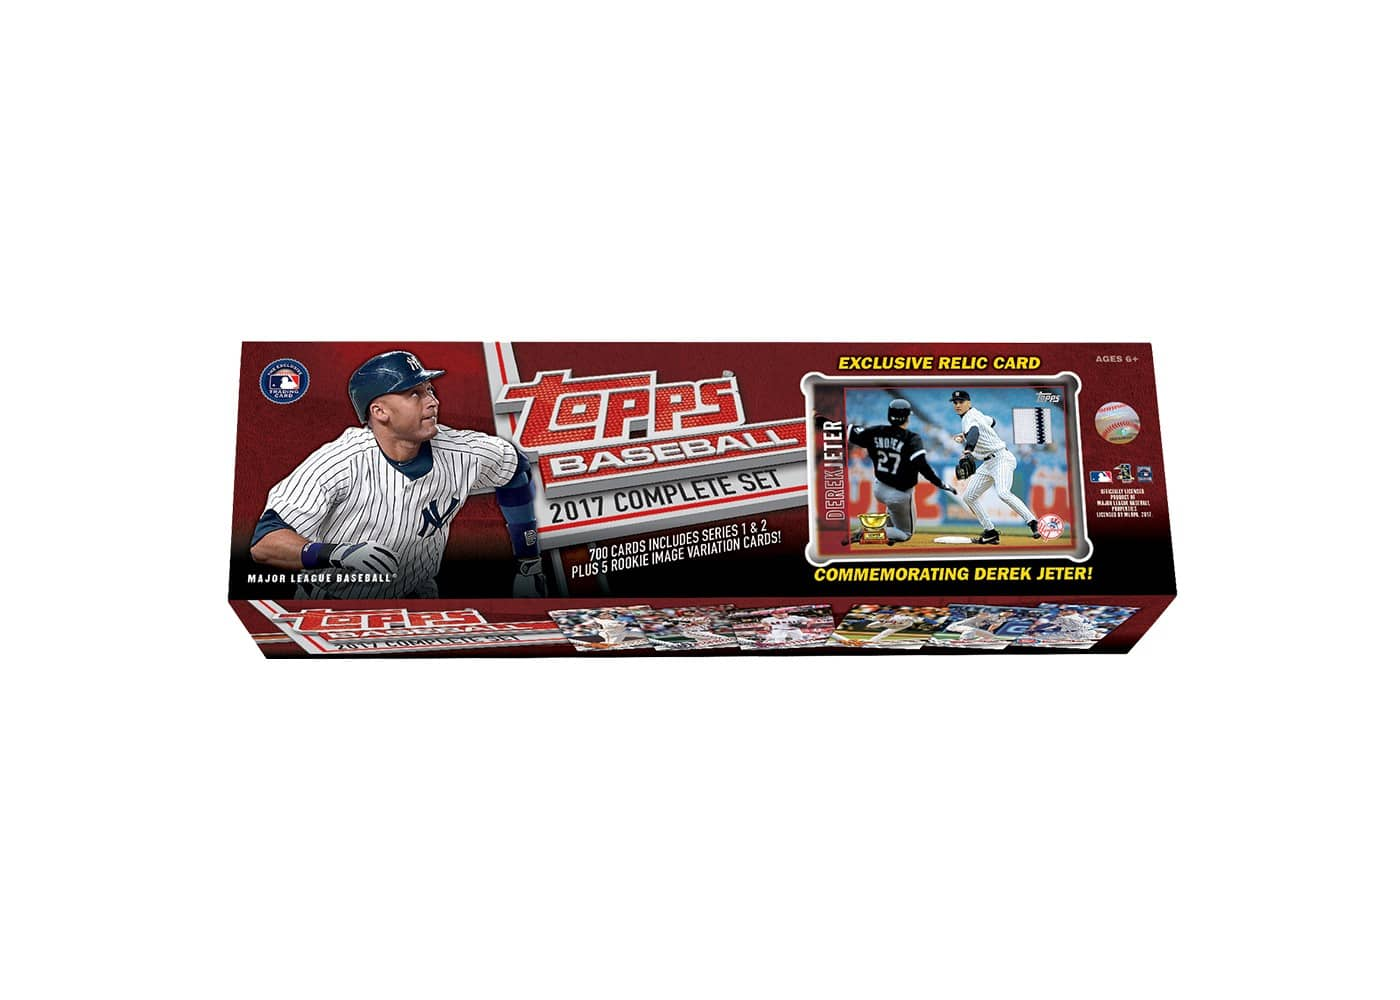 Topps Baseball 2017 Complete 700 Card Factory Set + Derek Jeter Game Used Relic Card $30.69 Shipped